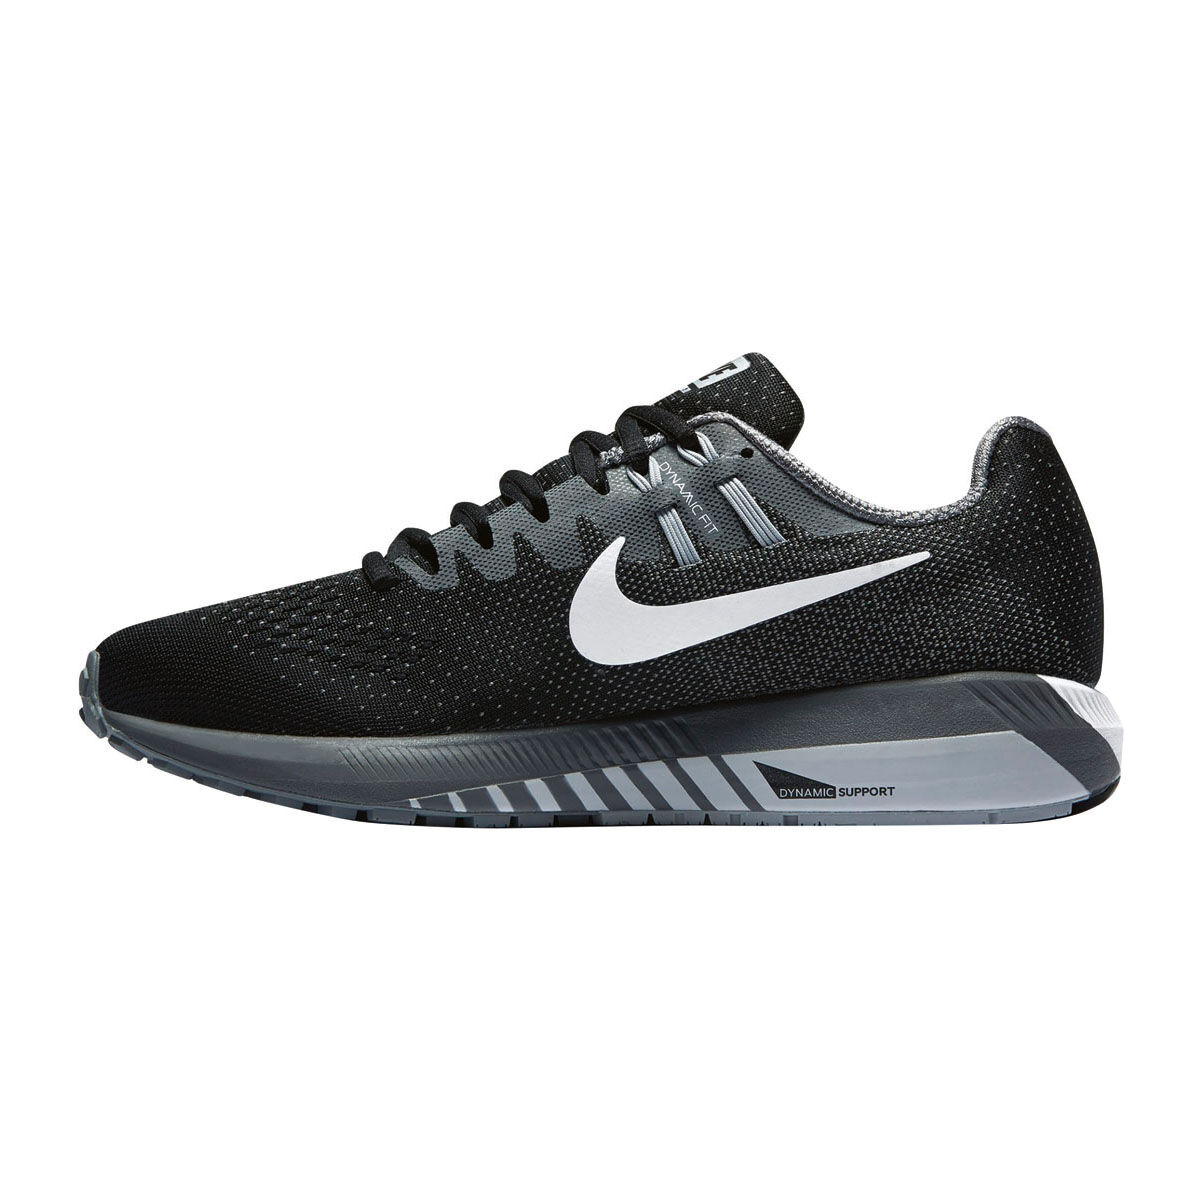 Nike Air Zoom Structure 20 Womens Running Shoes Black White US 8